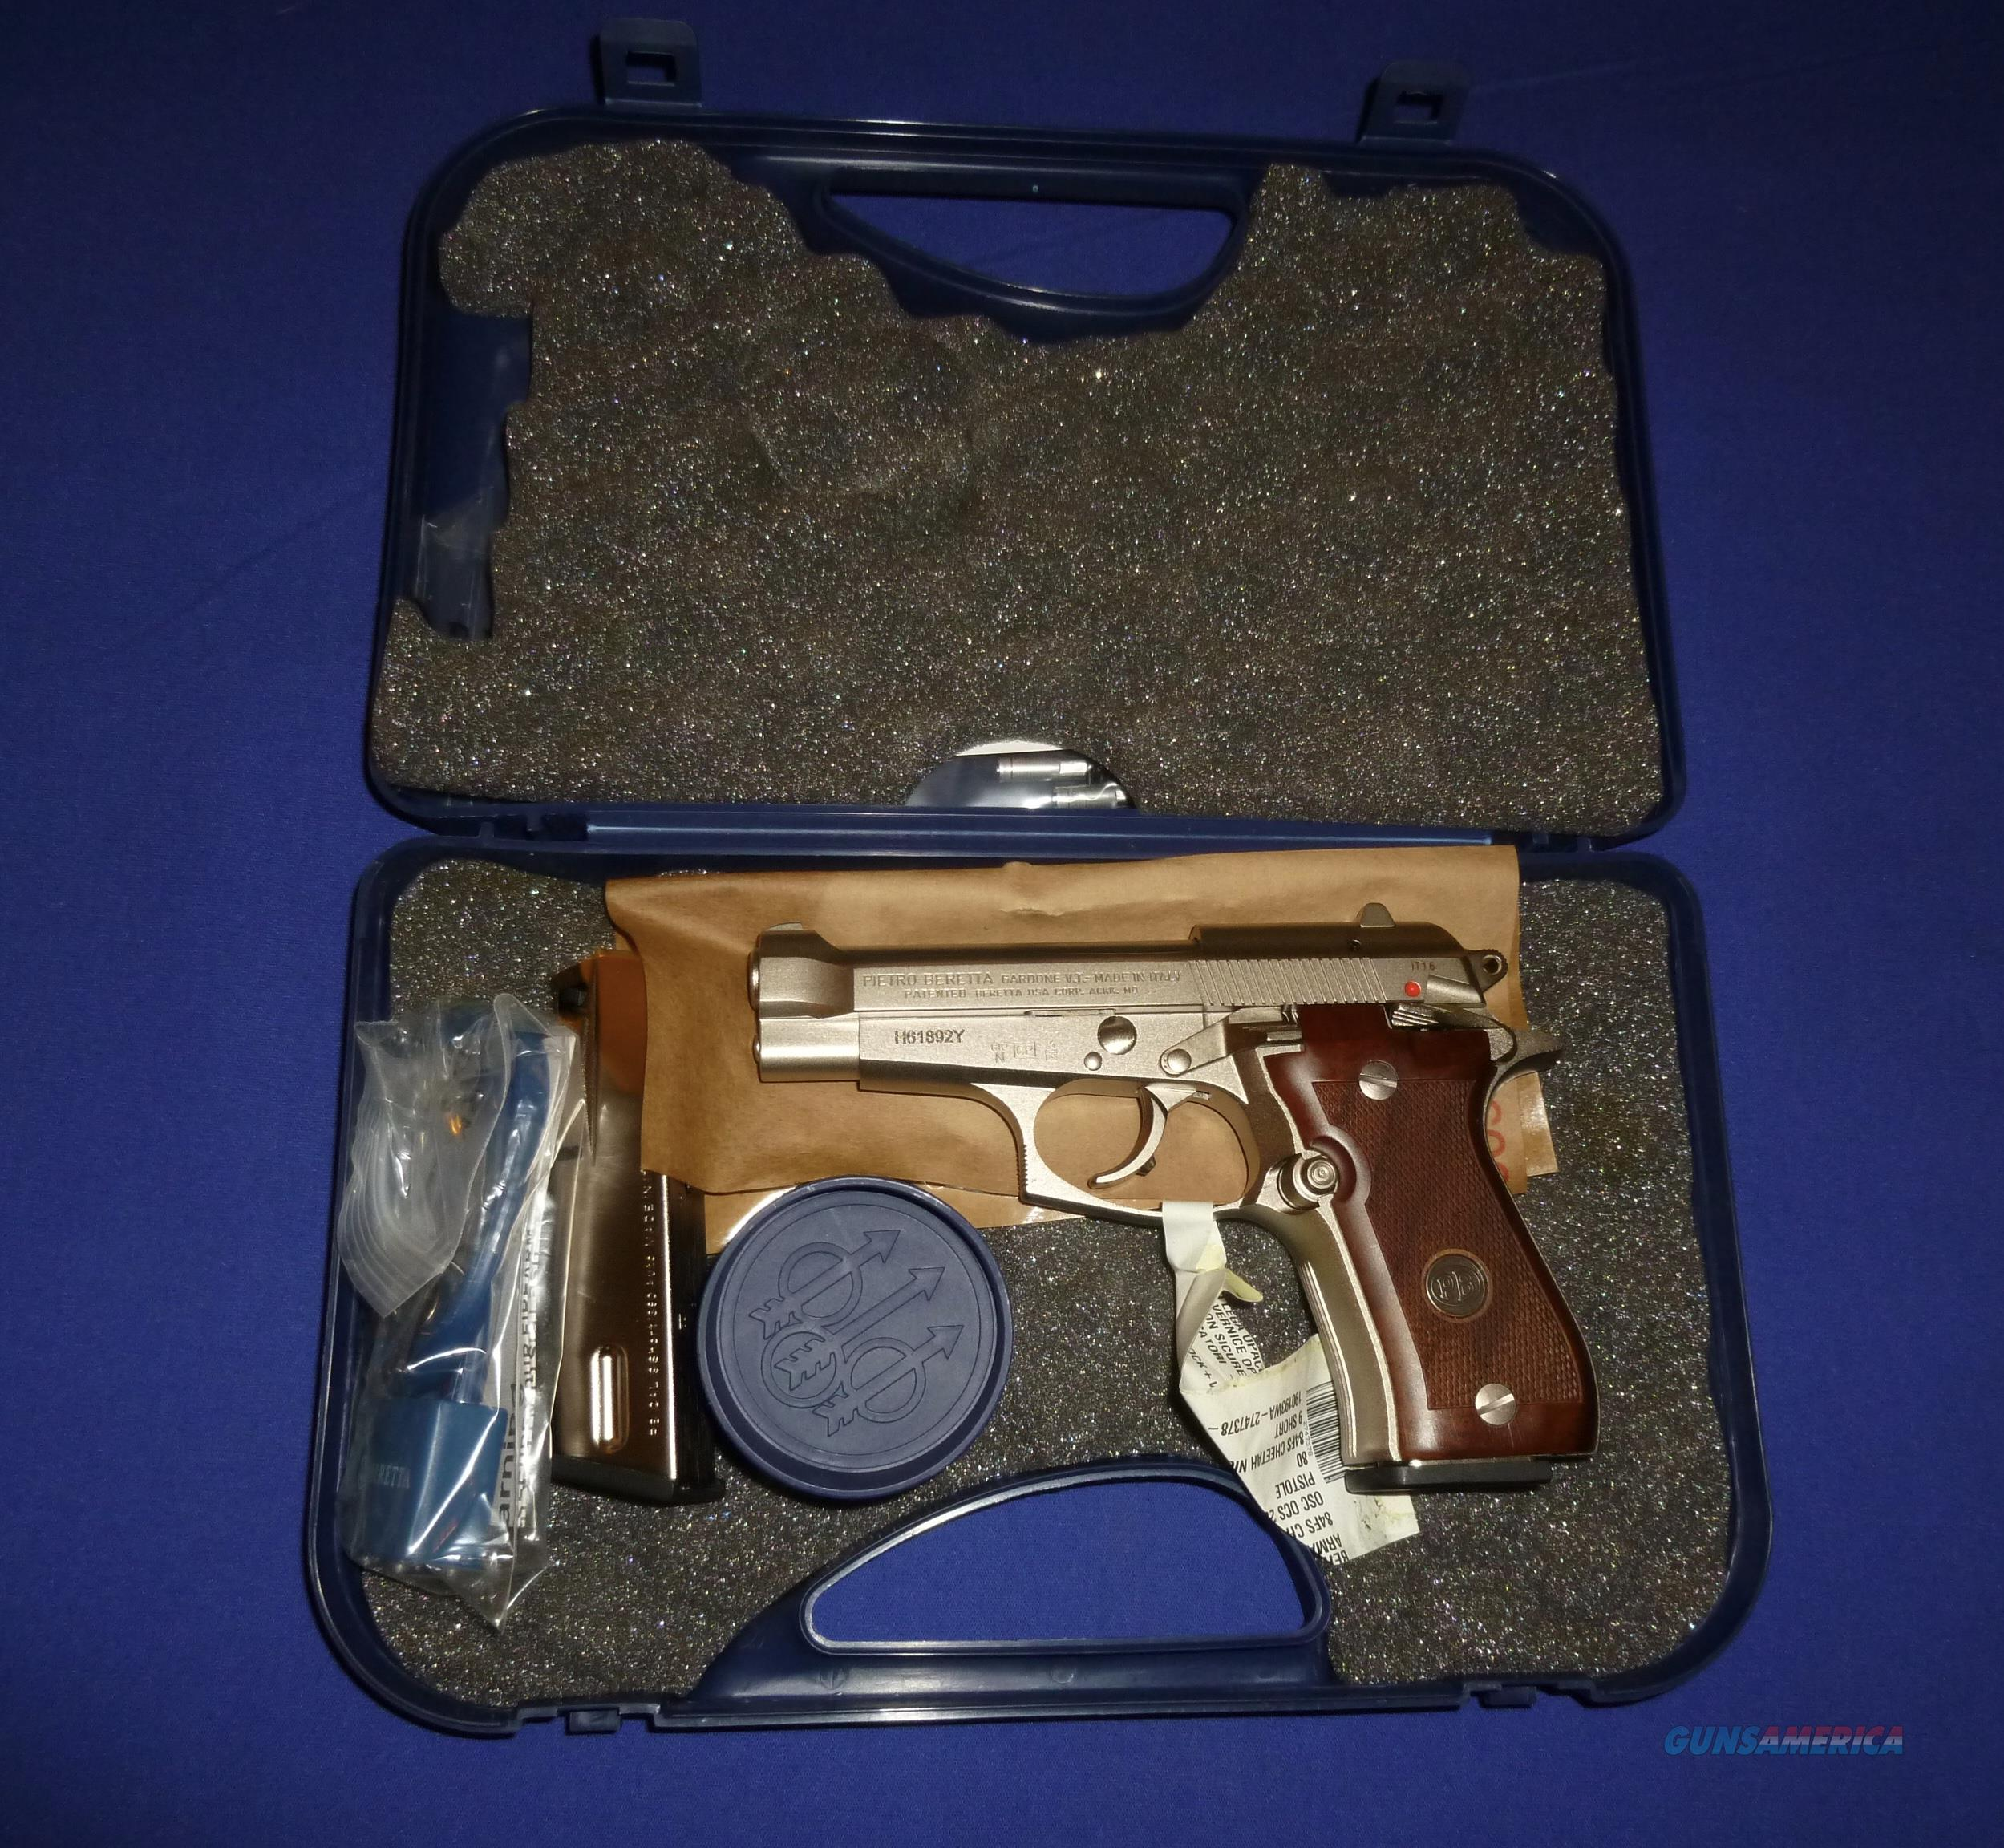 Beretta Model 70s 380 Pistol – Jerusalem House